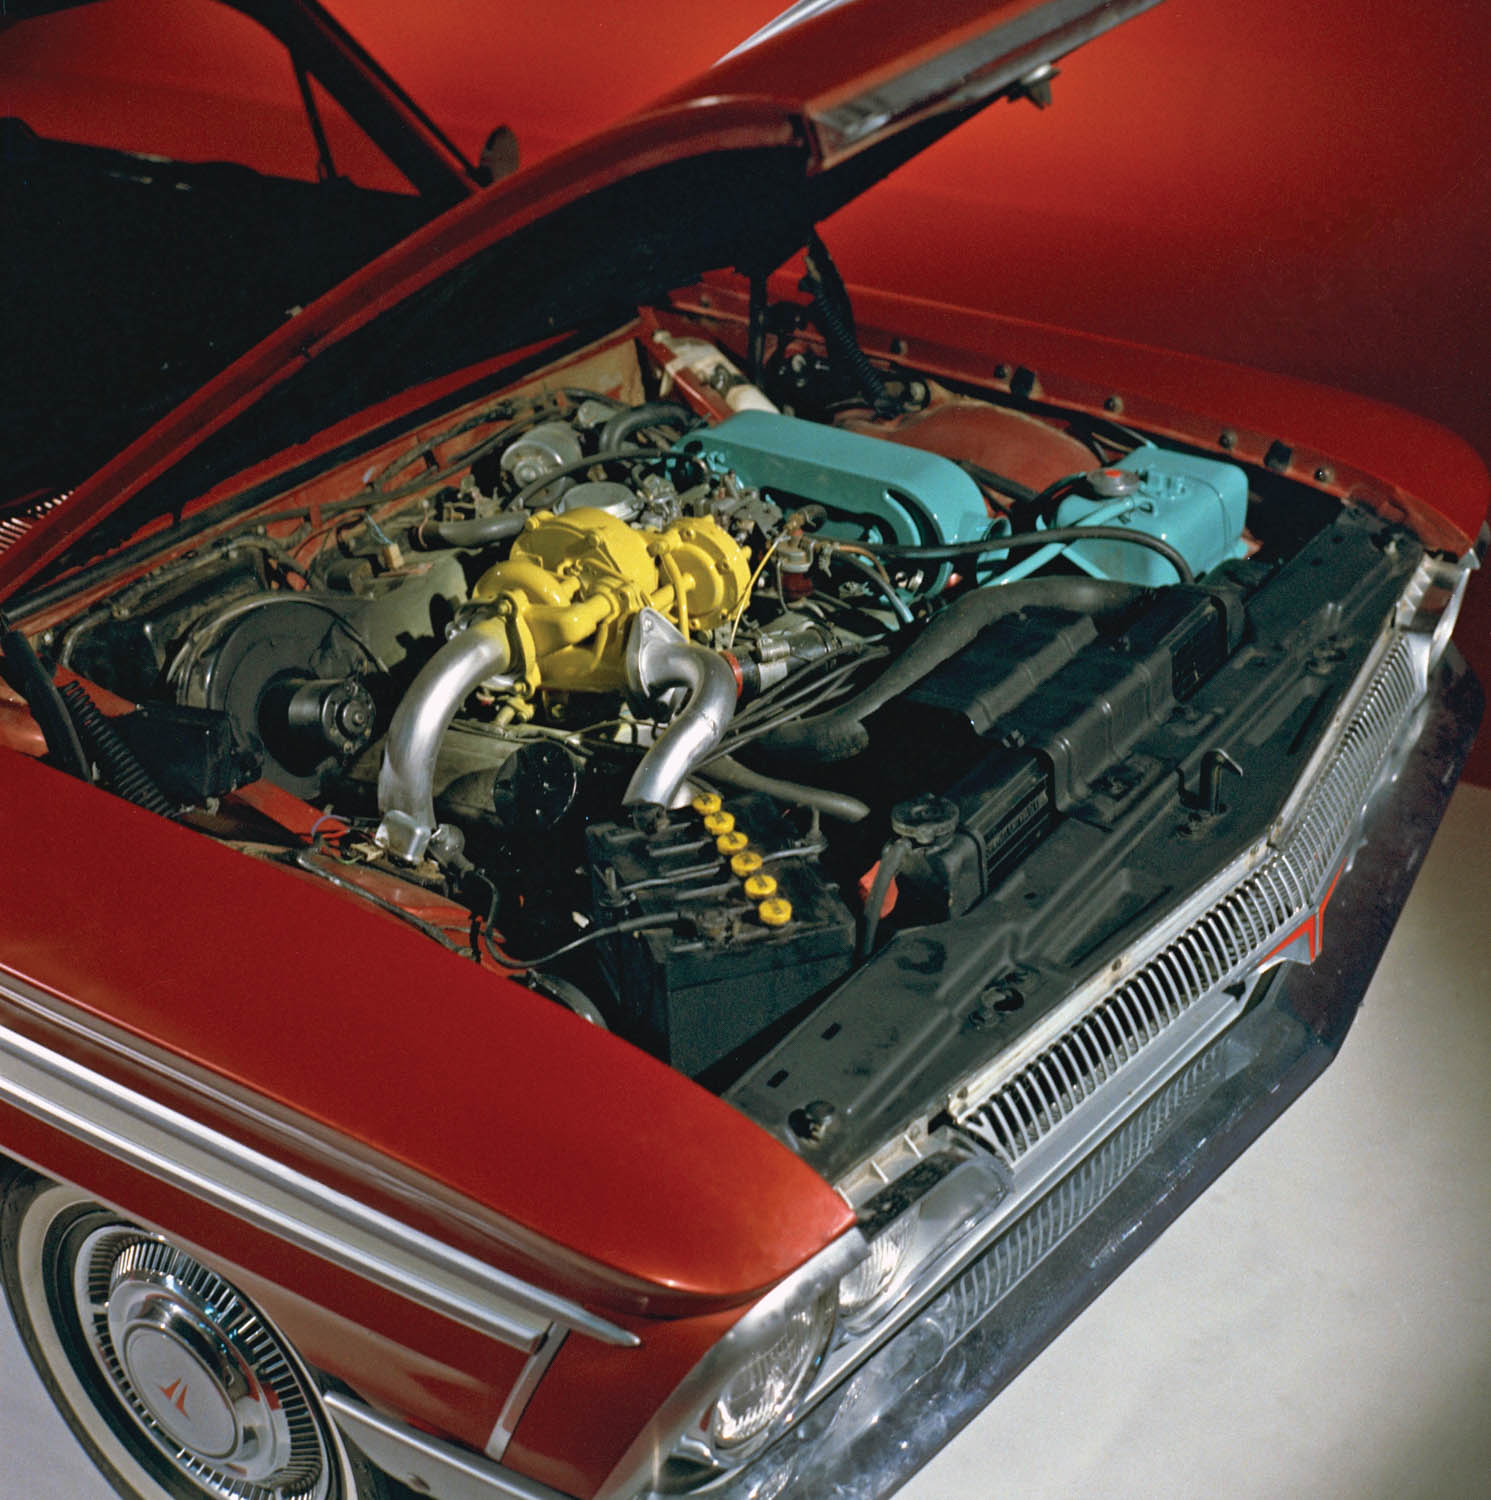 Oldsmobile's 1962 Jetfire Turbo Rocket V-8 was topped by a Garrett AiResearch turbocharger fed by a single-barrel Rochester side-draft carburetor. Five psi of boost raised output to 215 horsepower at 4800 rpm and 300 pound-feet of torque at 3200.